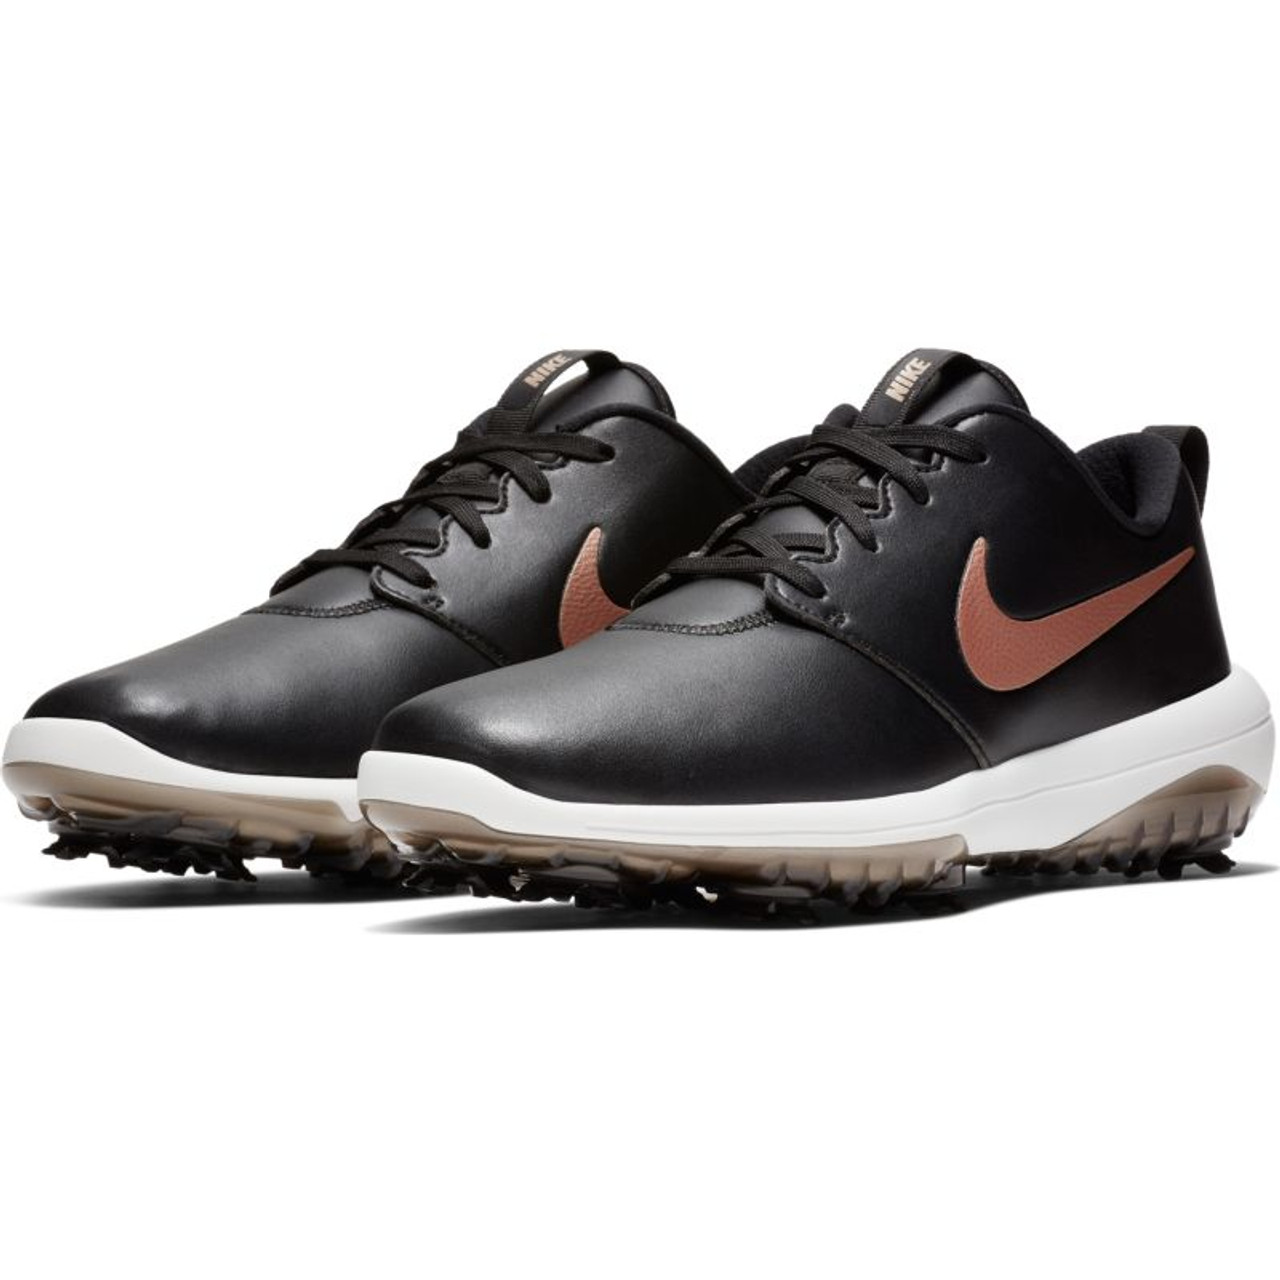 7a33e4577282 ... Nike Womens Roshe G Tour Golf Shoes. Previous. Black   Red Bronze    Summit White